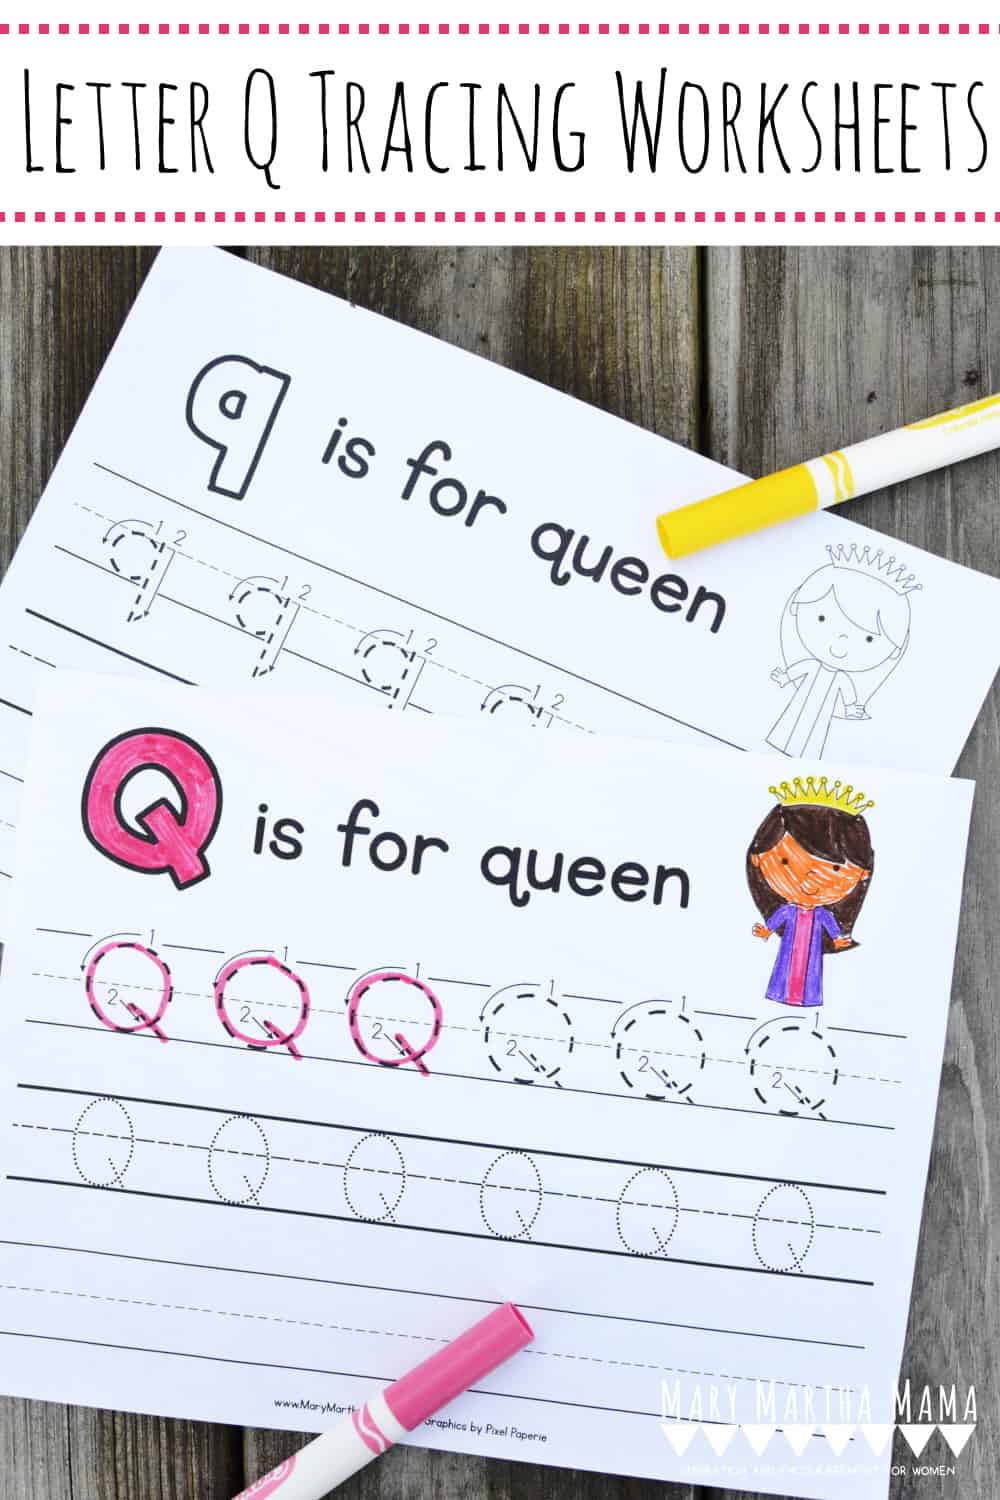 Use these free printable Letter Q Tracing Worksheets to help your kiddo learn proper letter formation for upper and lower case Q.